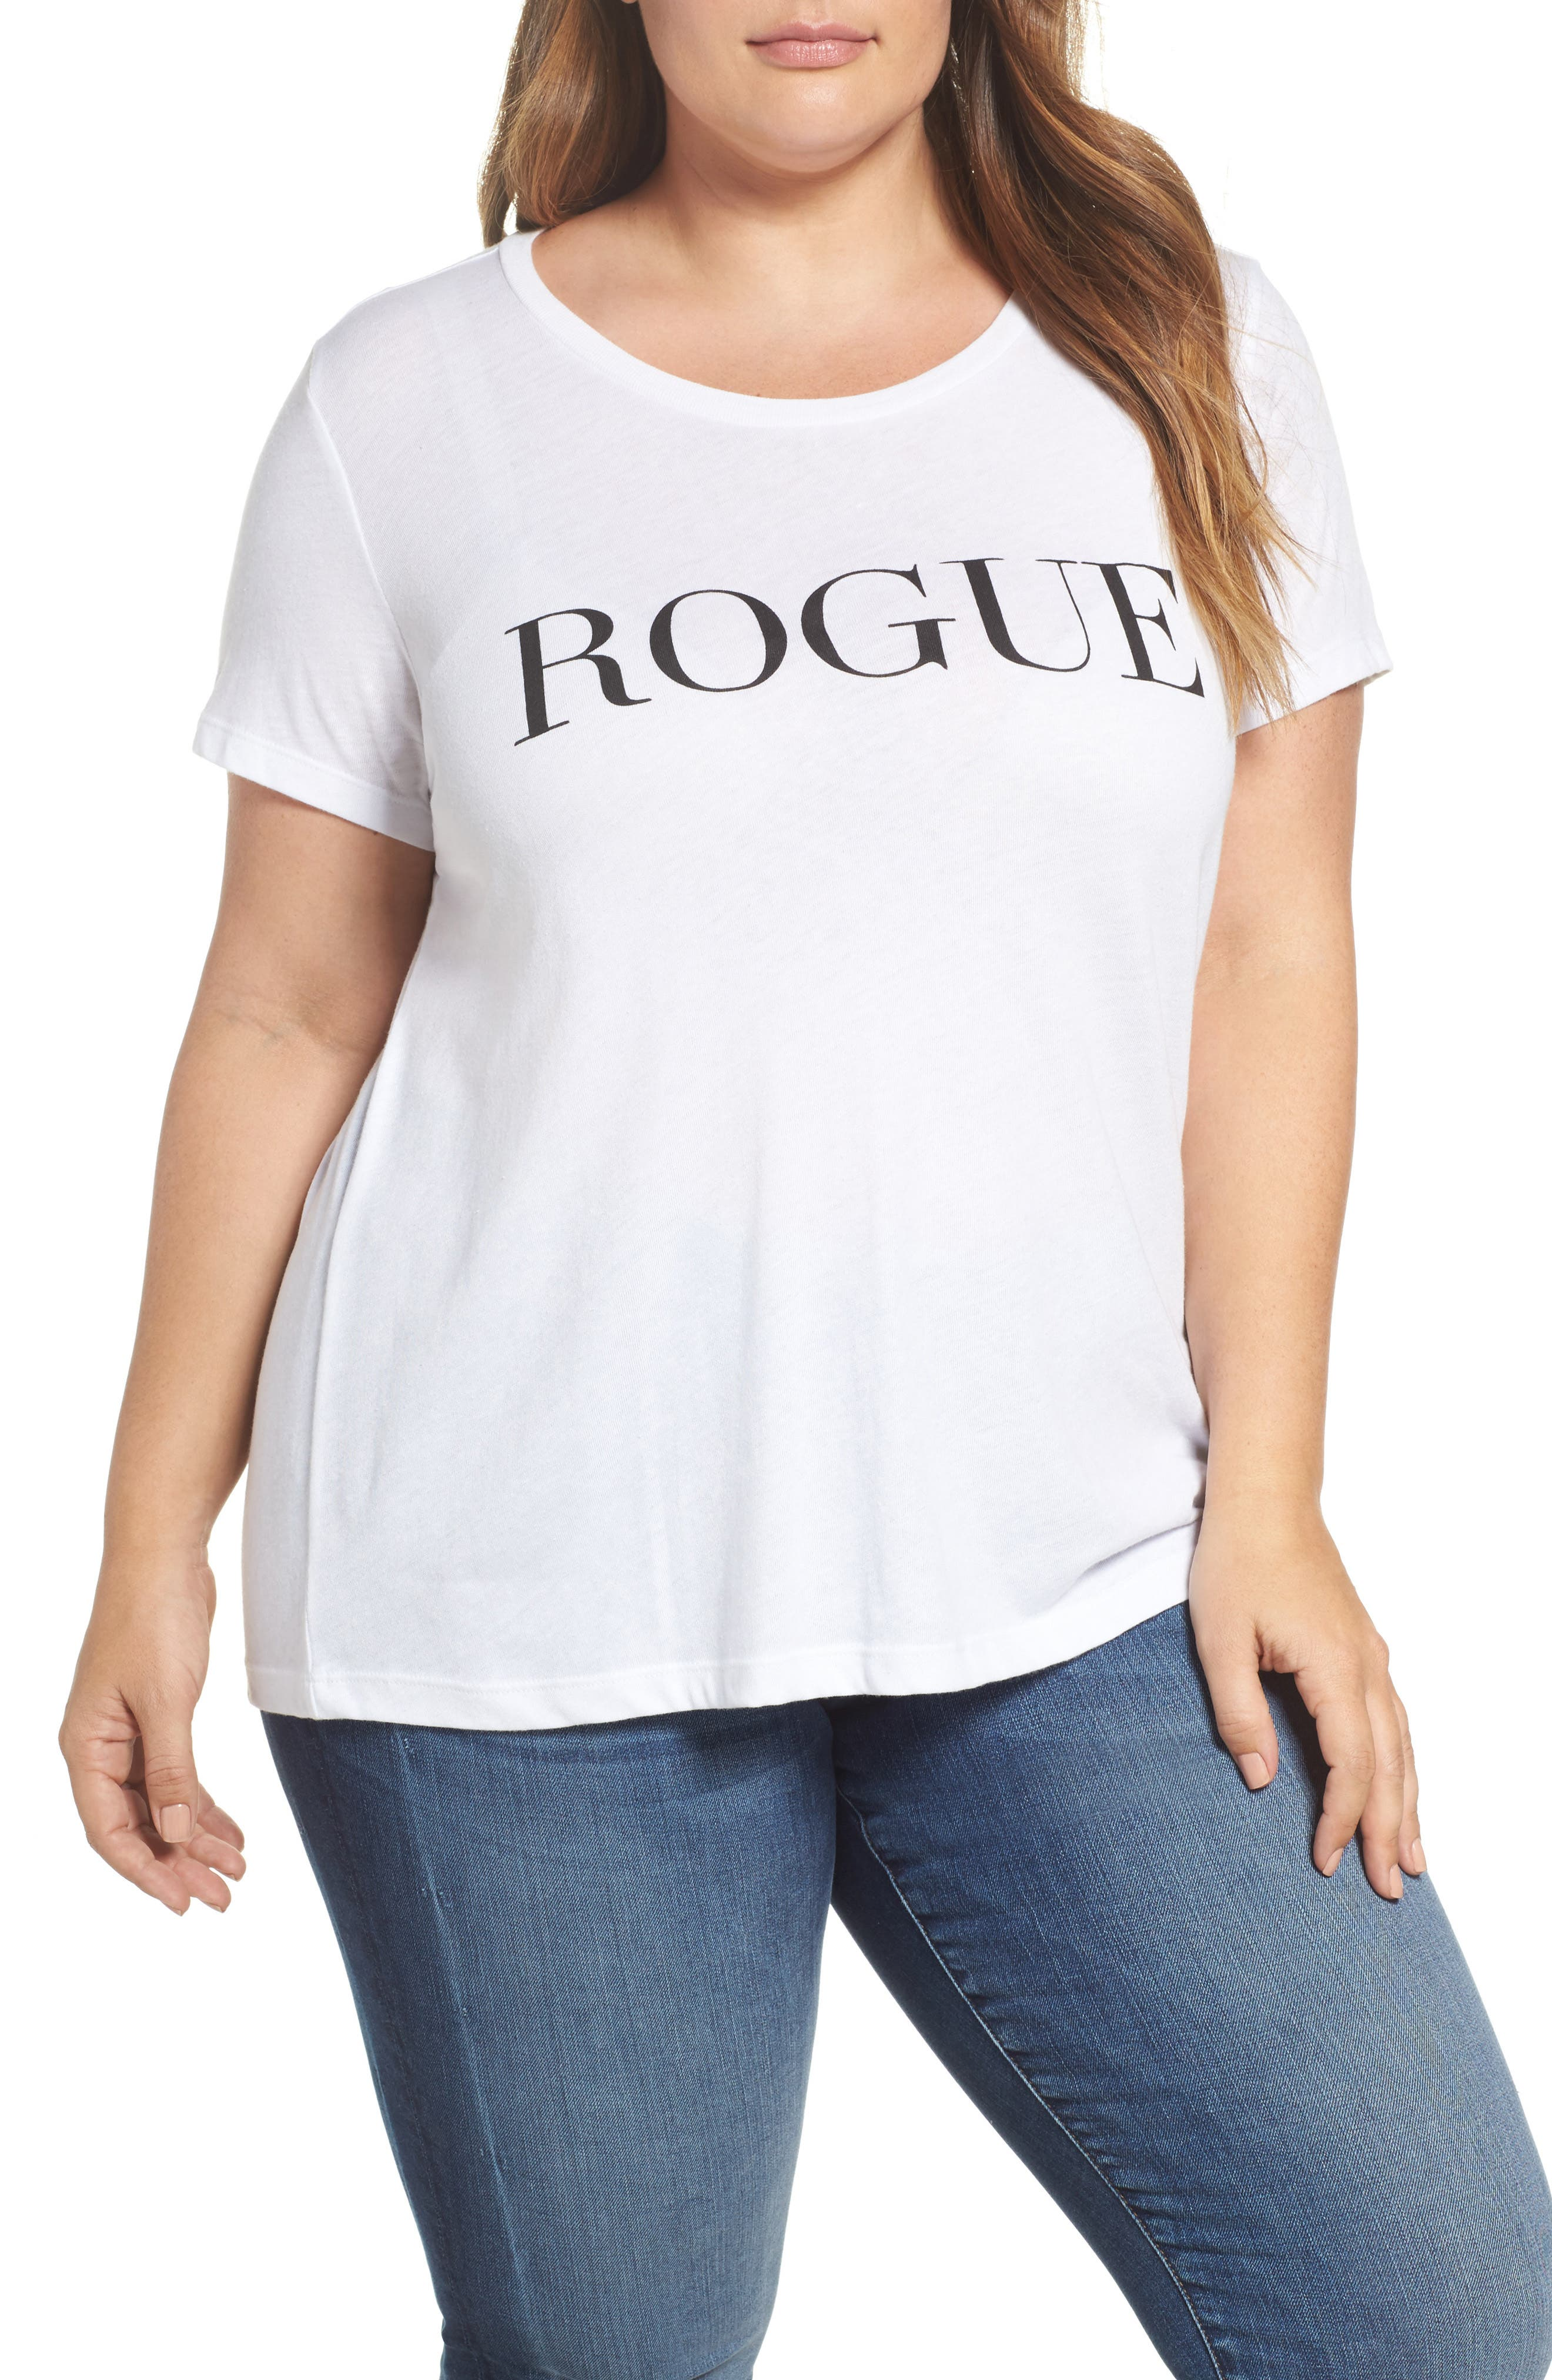 Main Image - Sub_Urban Riot Rogue Graphic Tee (Plus Size)